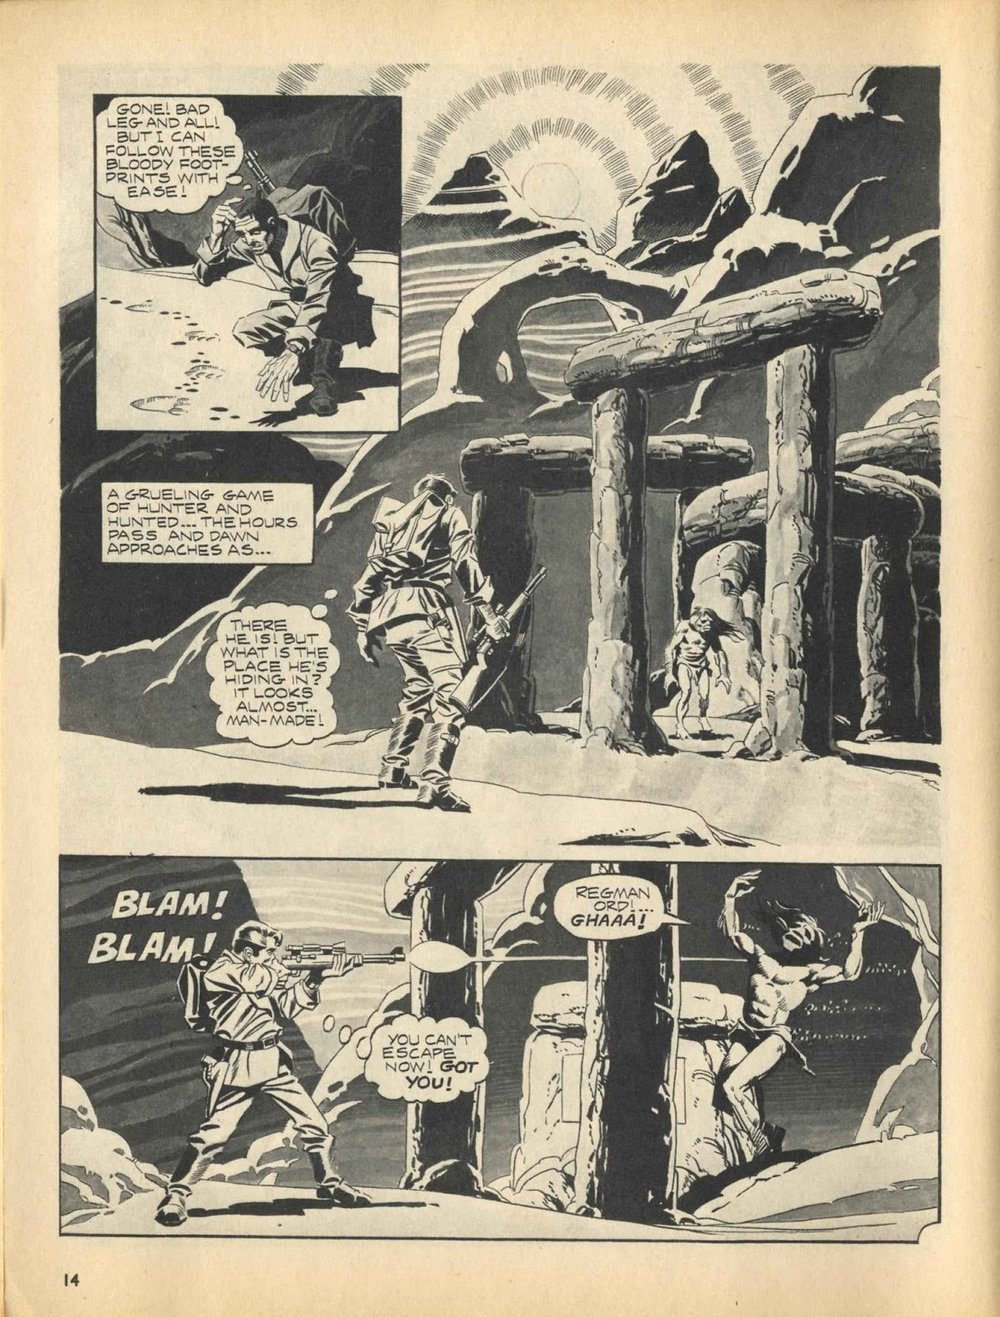 Web of Horror (1969) #3 pg14, written by Otto Binder with art from Ralph Reese.